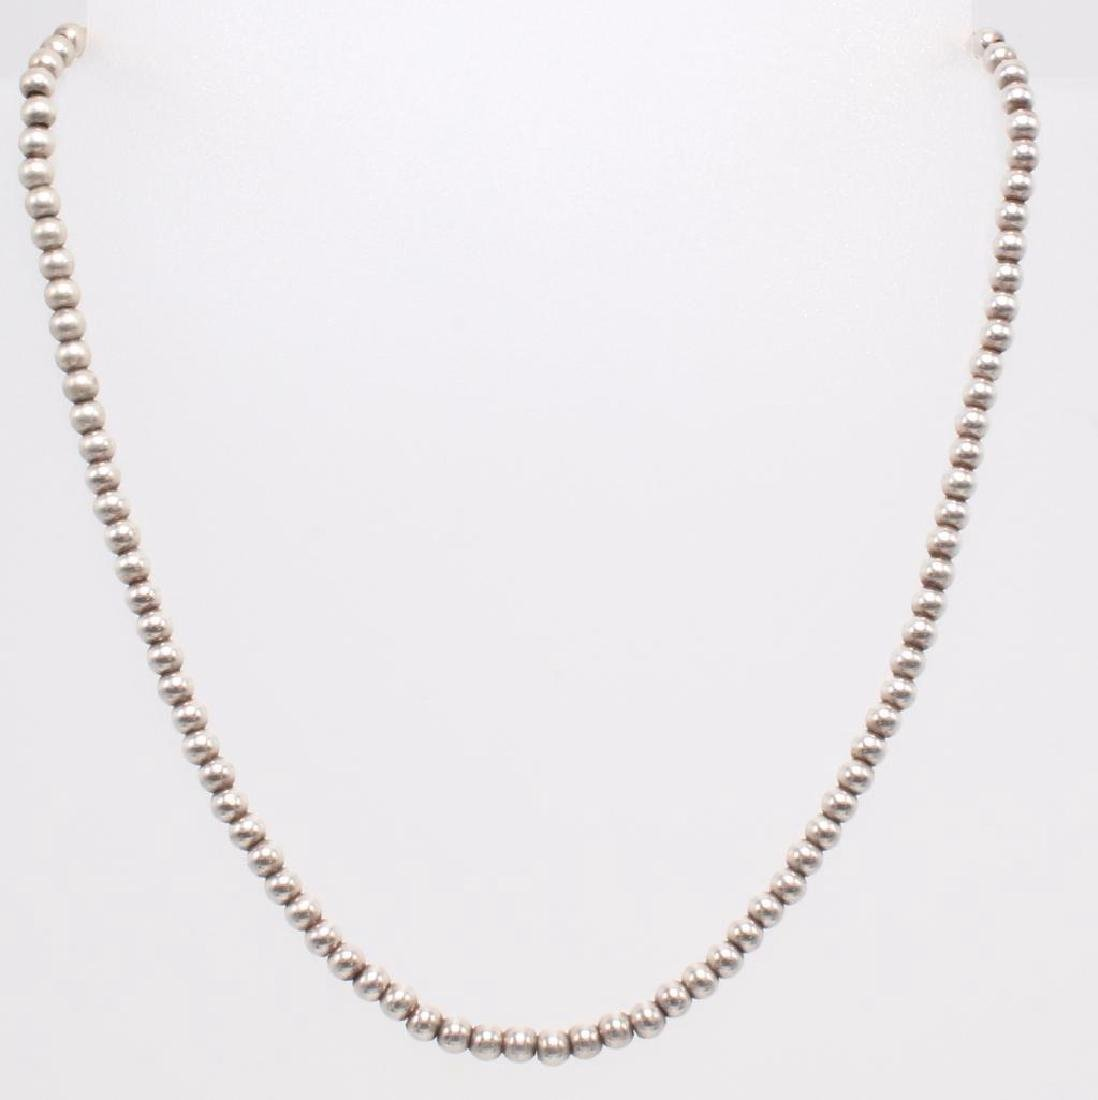 NECKLACE. BEAD. STERLING SILVER